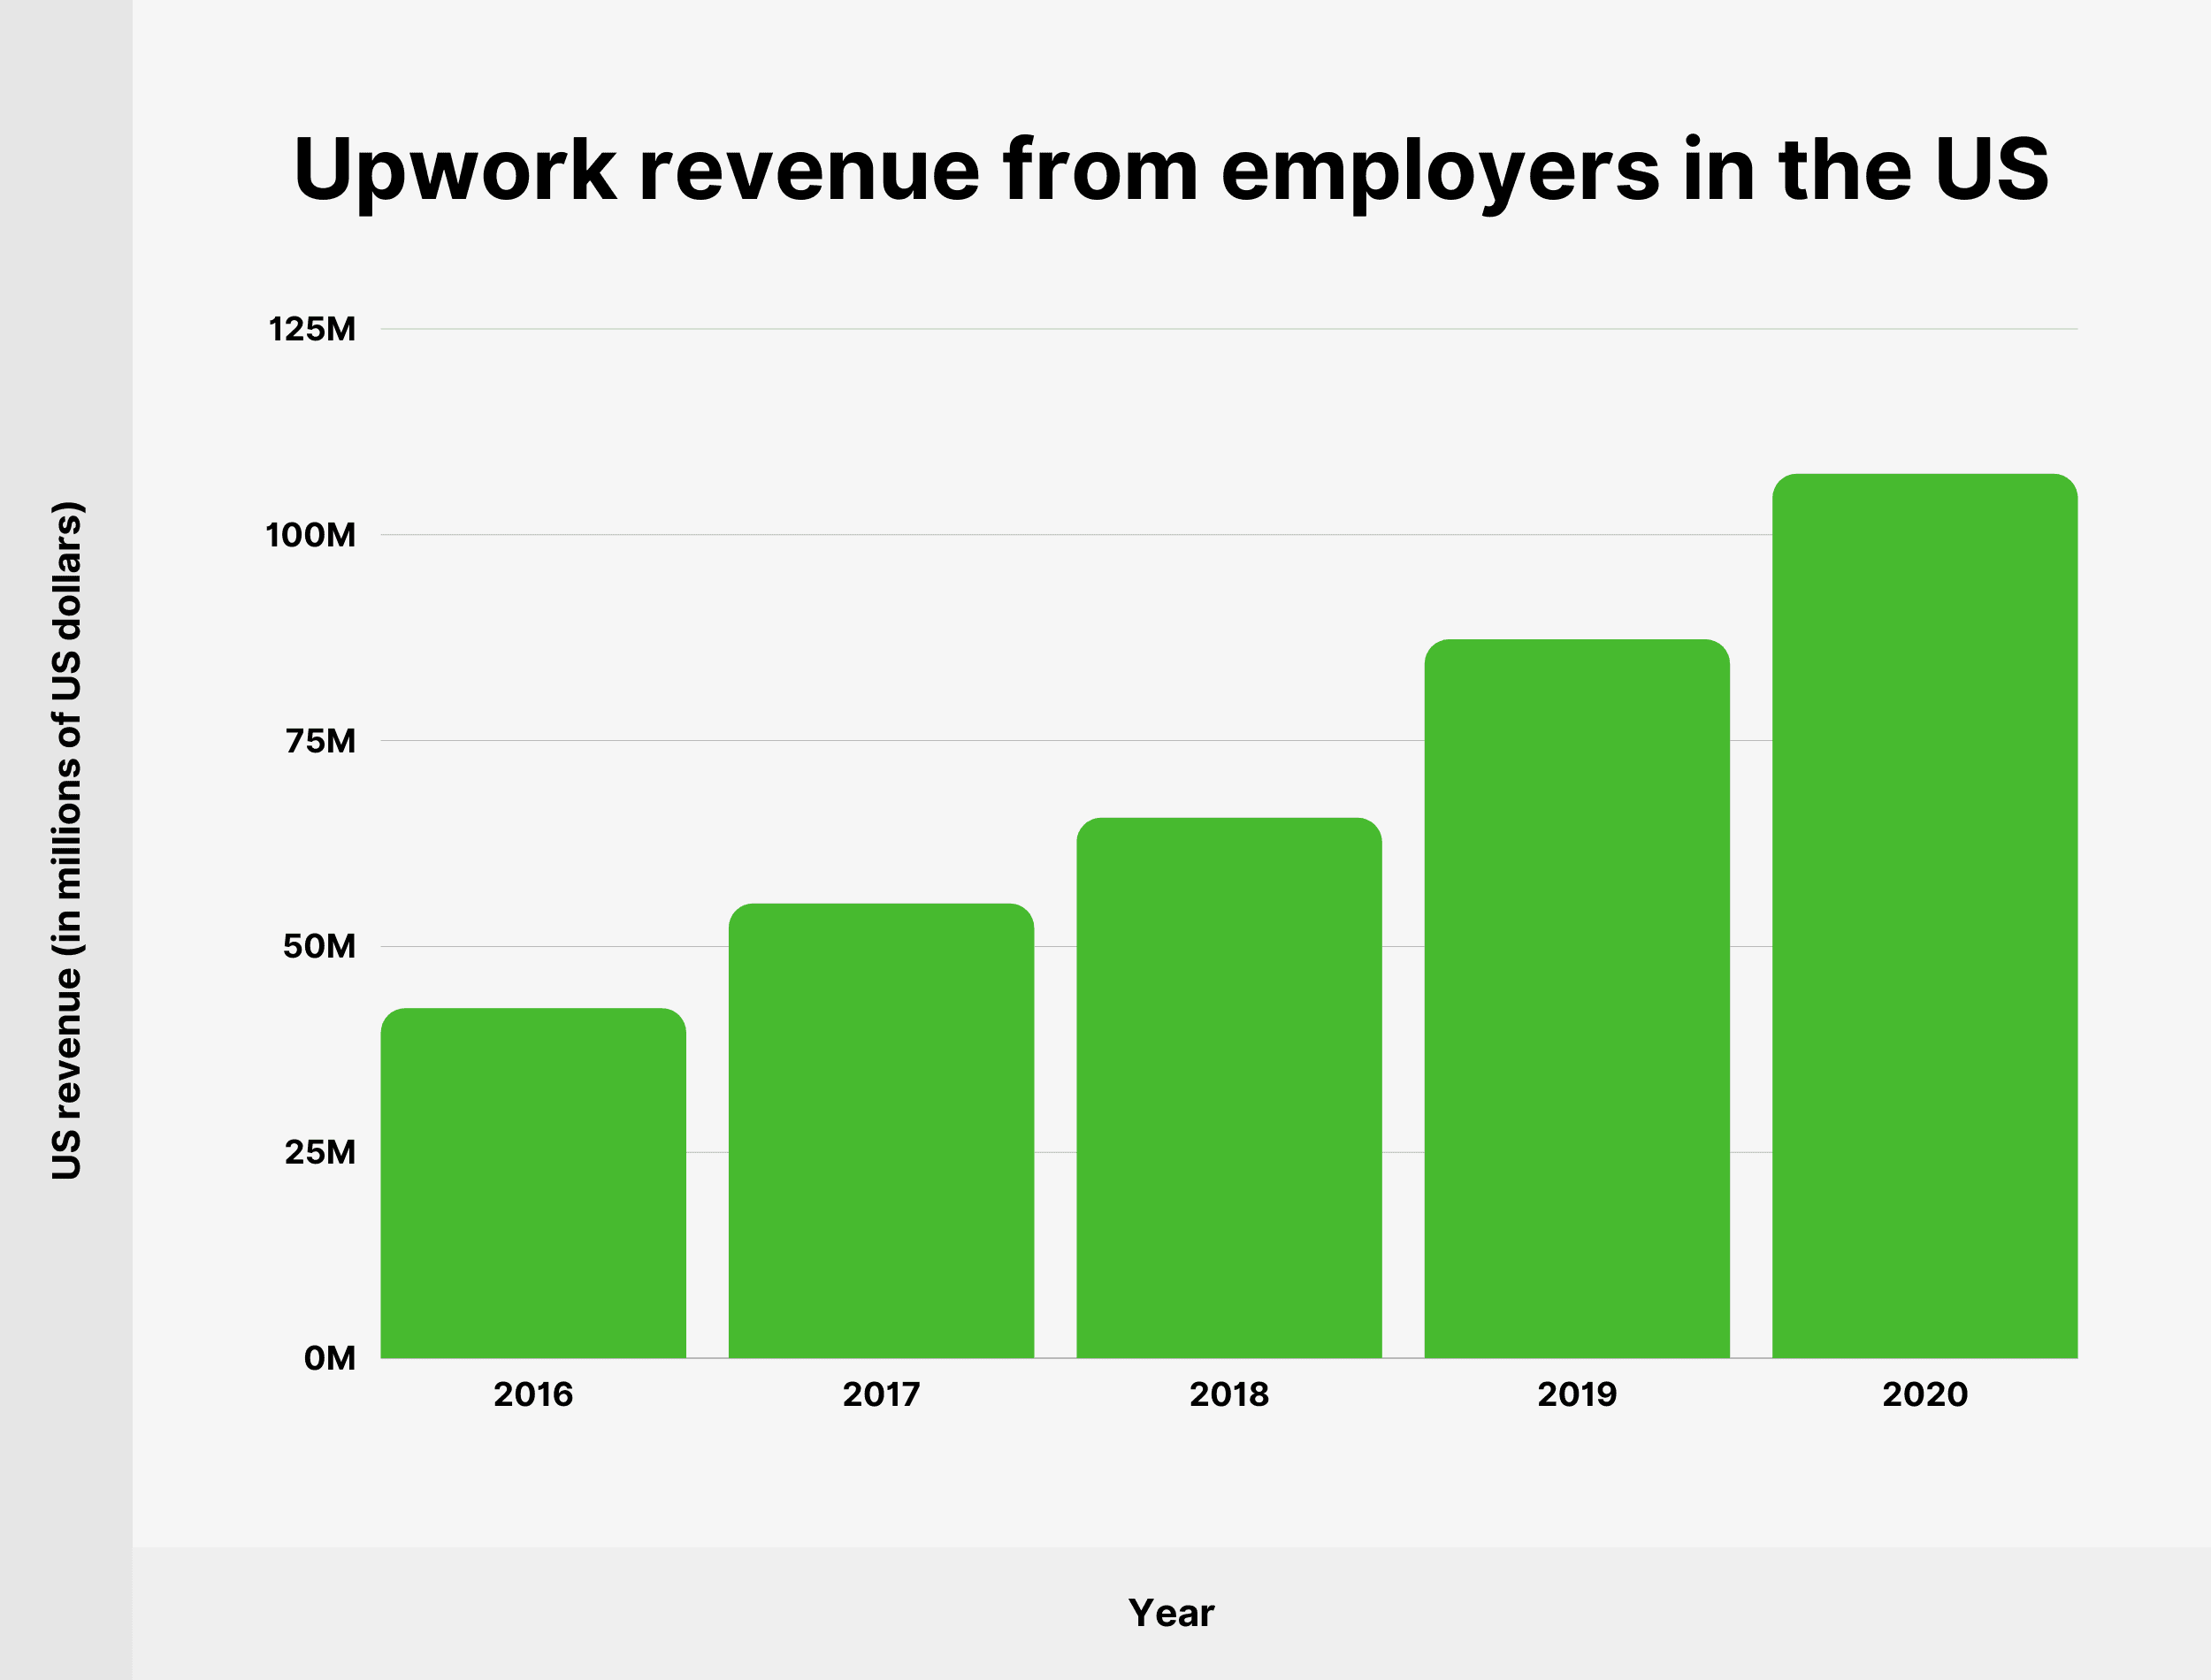 Upwork revenue from employers in the US